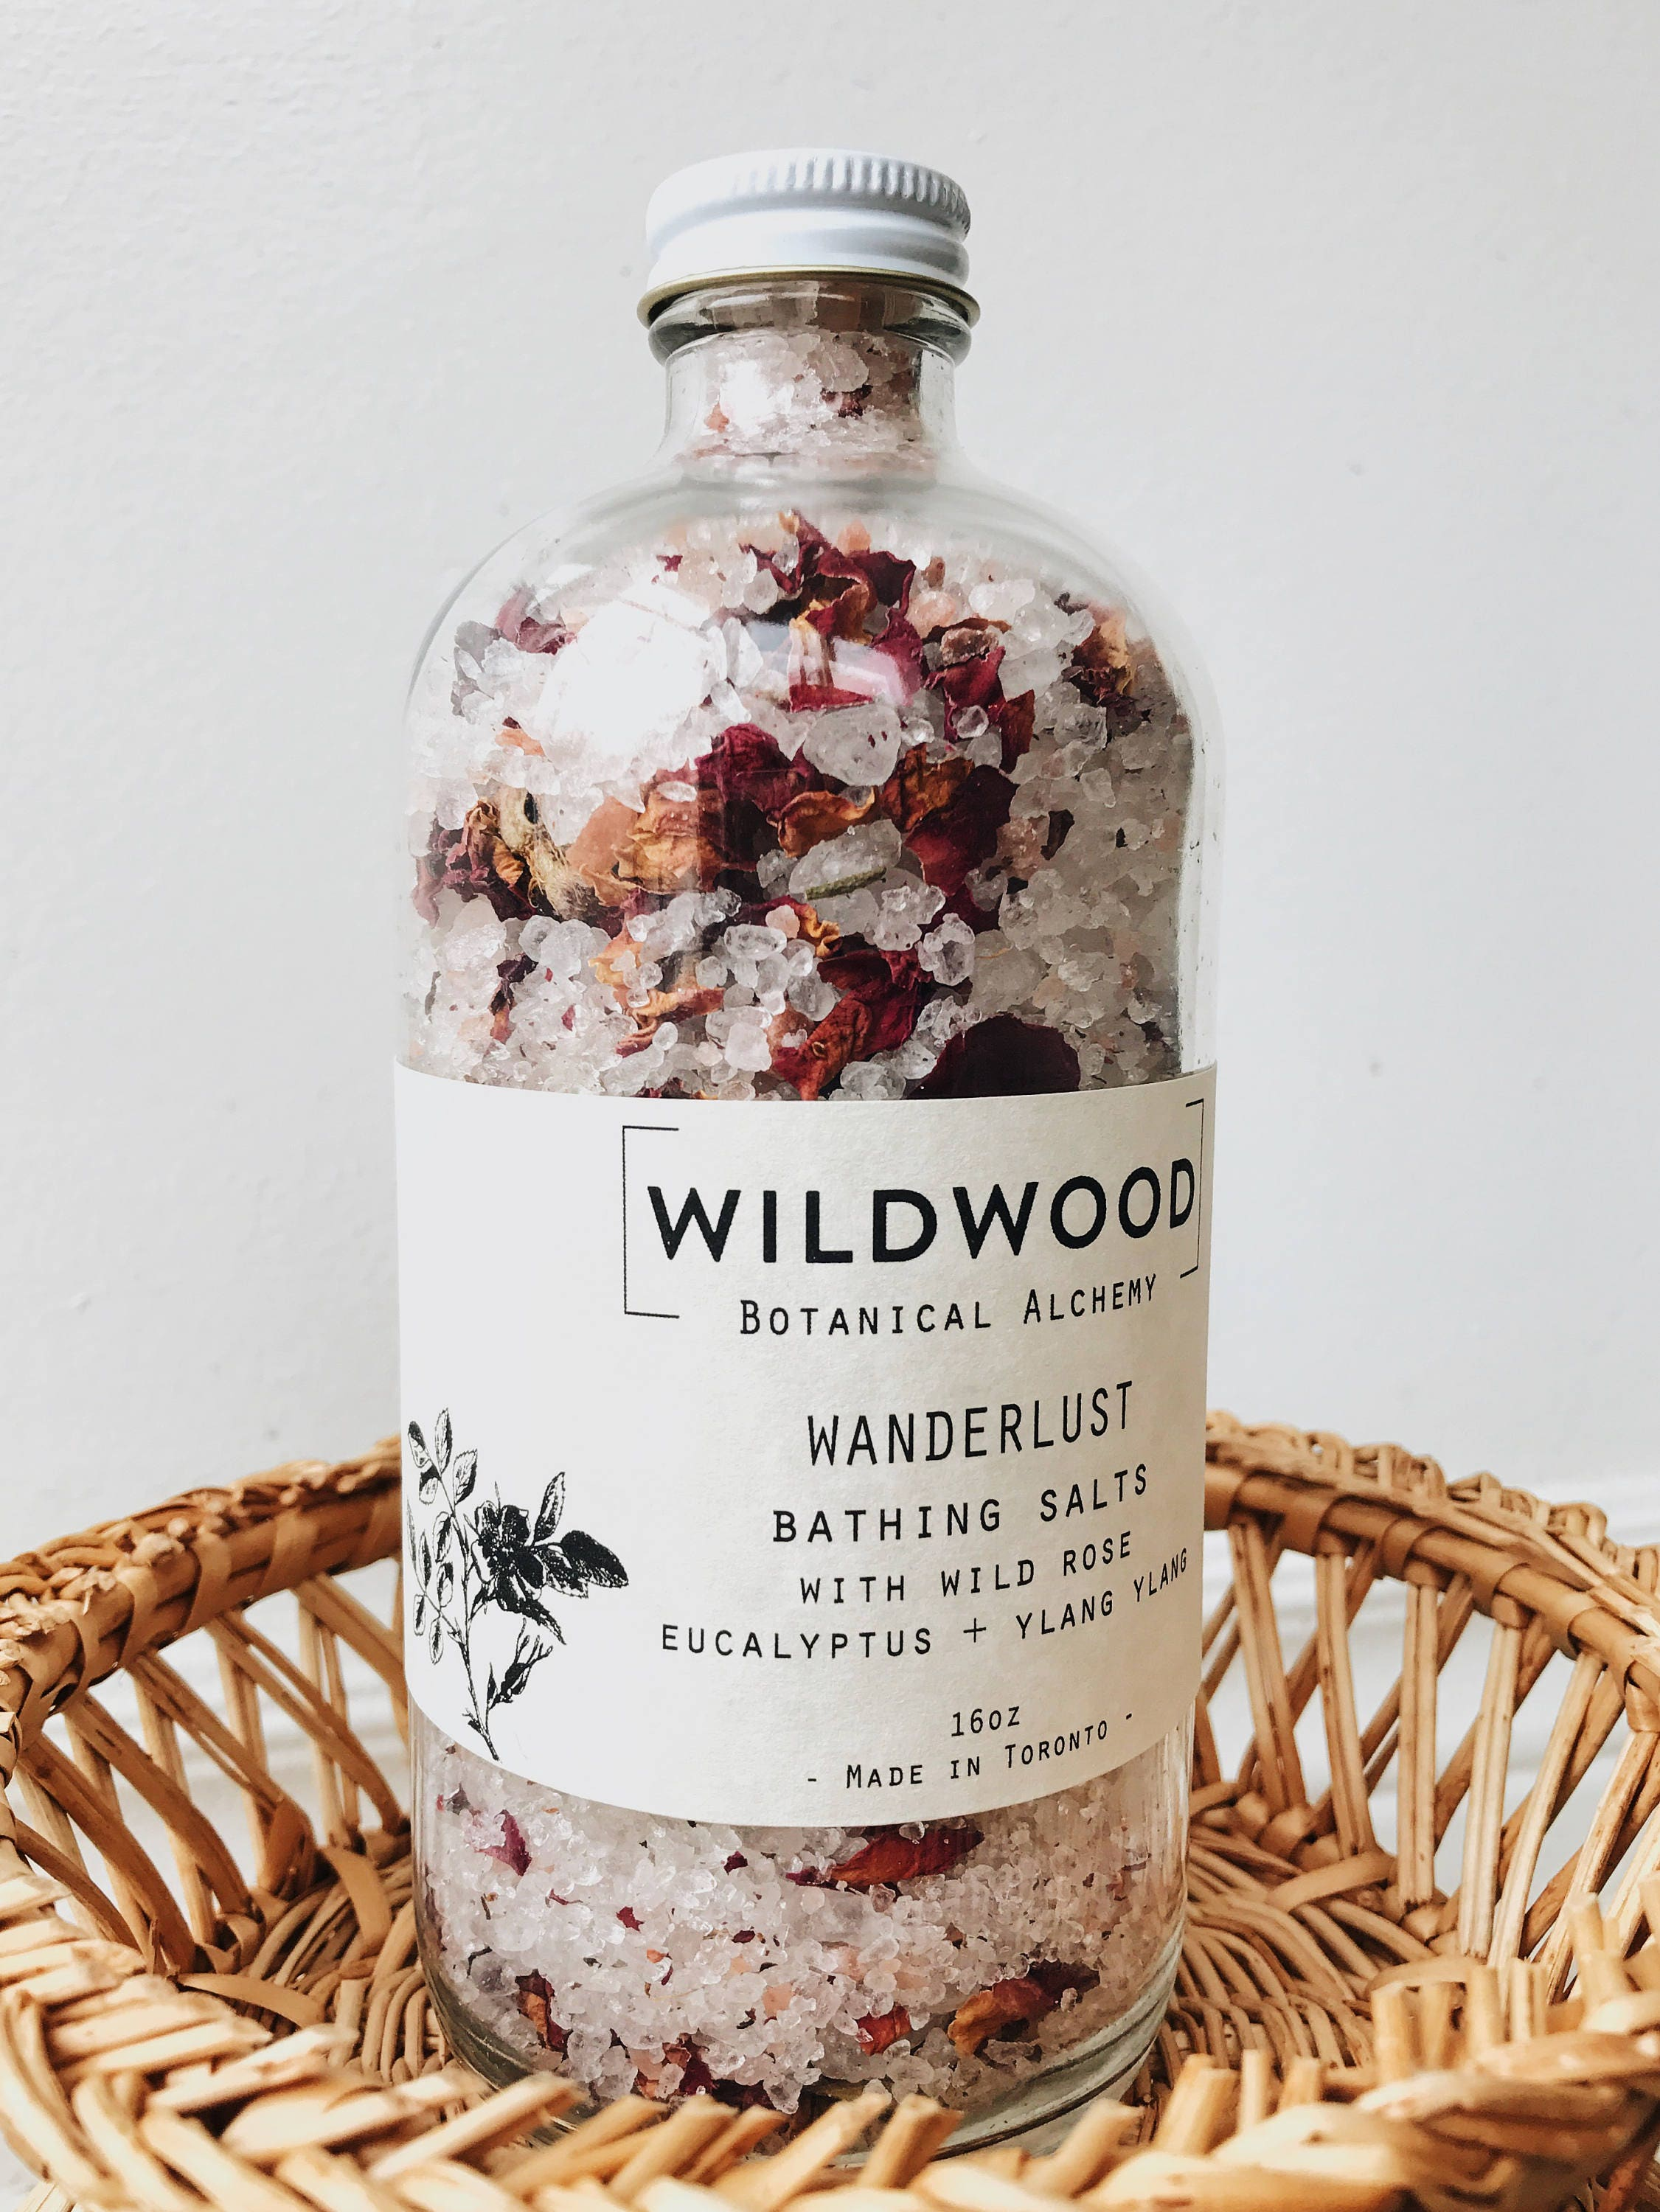 Wildwood WANDERLUST Rose Bath Bath Salts Bath Soak w/